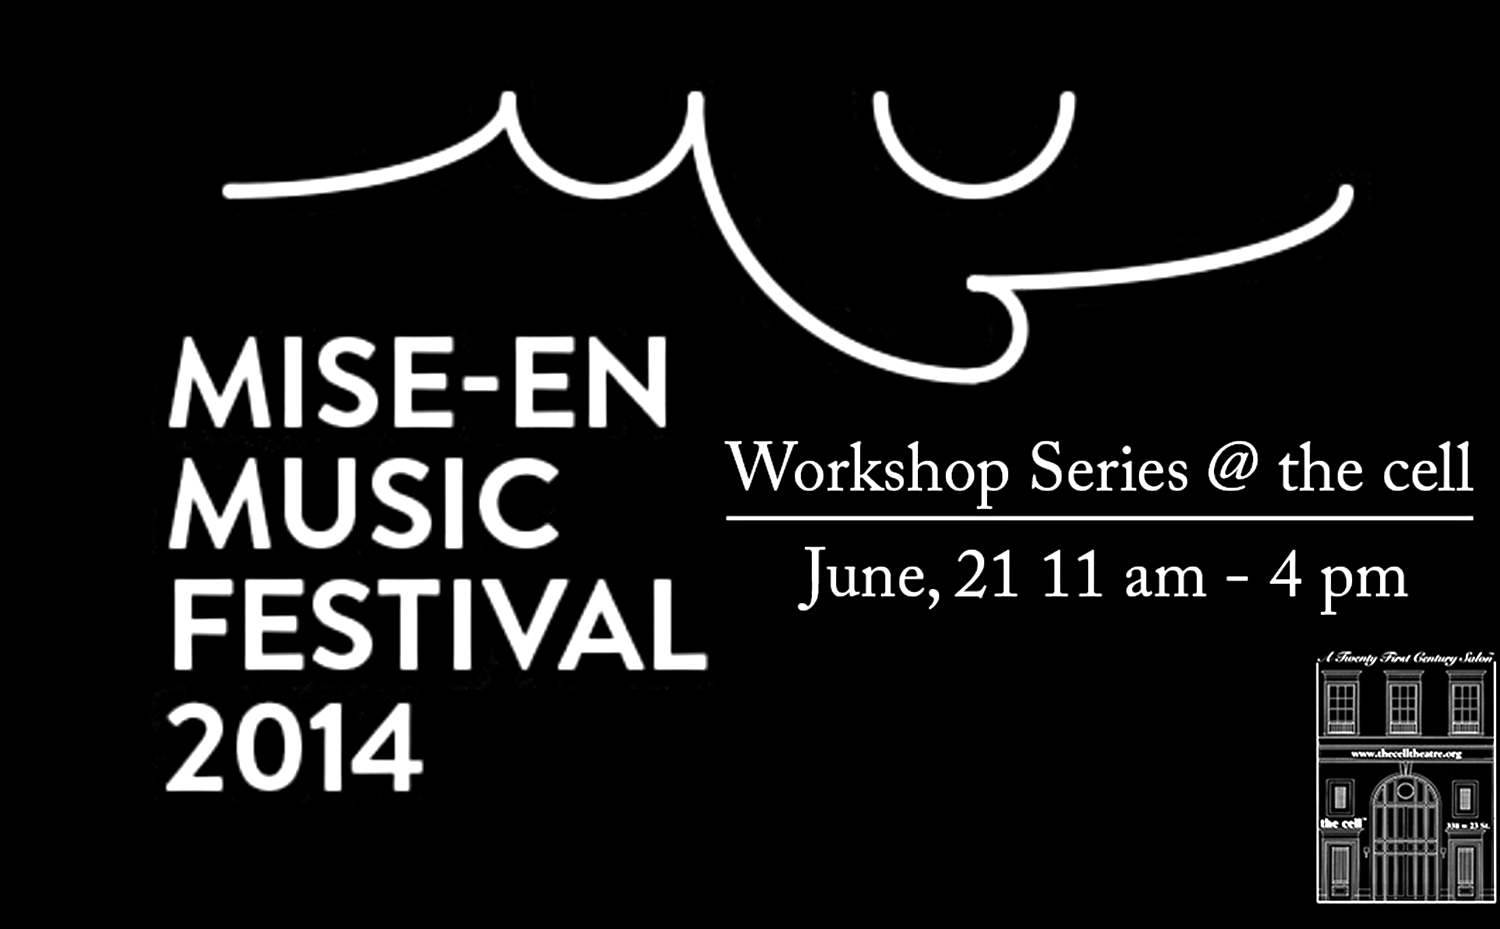 Workshop Series @ the cell      June 21   : Composition, New Sounds, and Orchestral Instruments / members of ensemble mise-en (  11am-12:15pm  )    June 21   : Improvisation / Fay Victor (  1-2:15pm  )     June 21   : New Music and Korean Traditional Instruments / Gamin (  2:45-4pm  )    For more information about mise-en music festival 2014, please visit the festival website:   http://festival.mise-en.org/